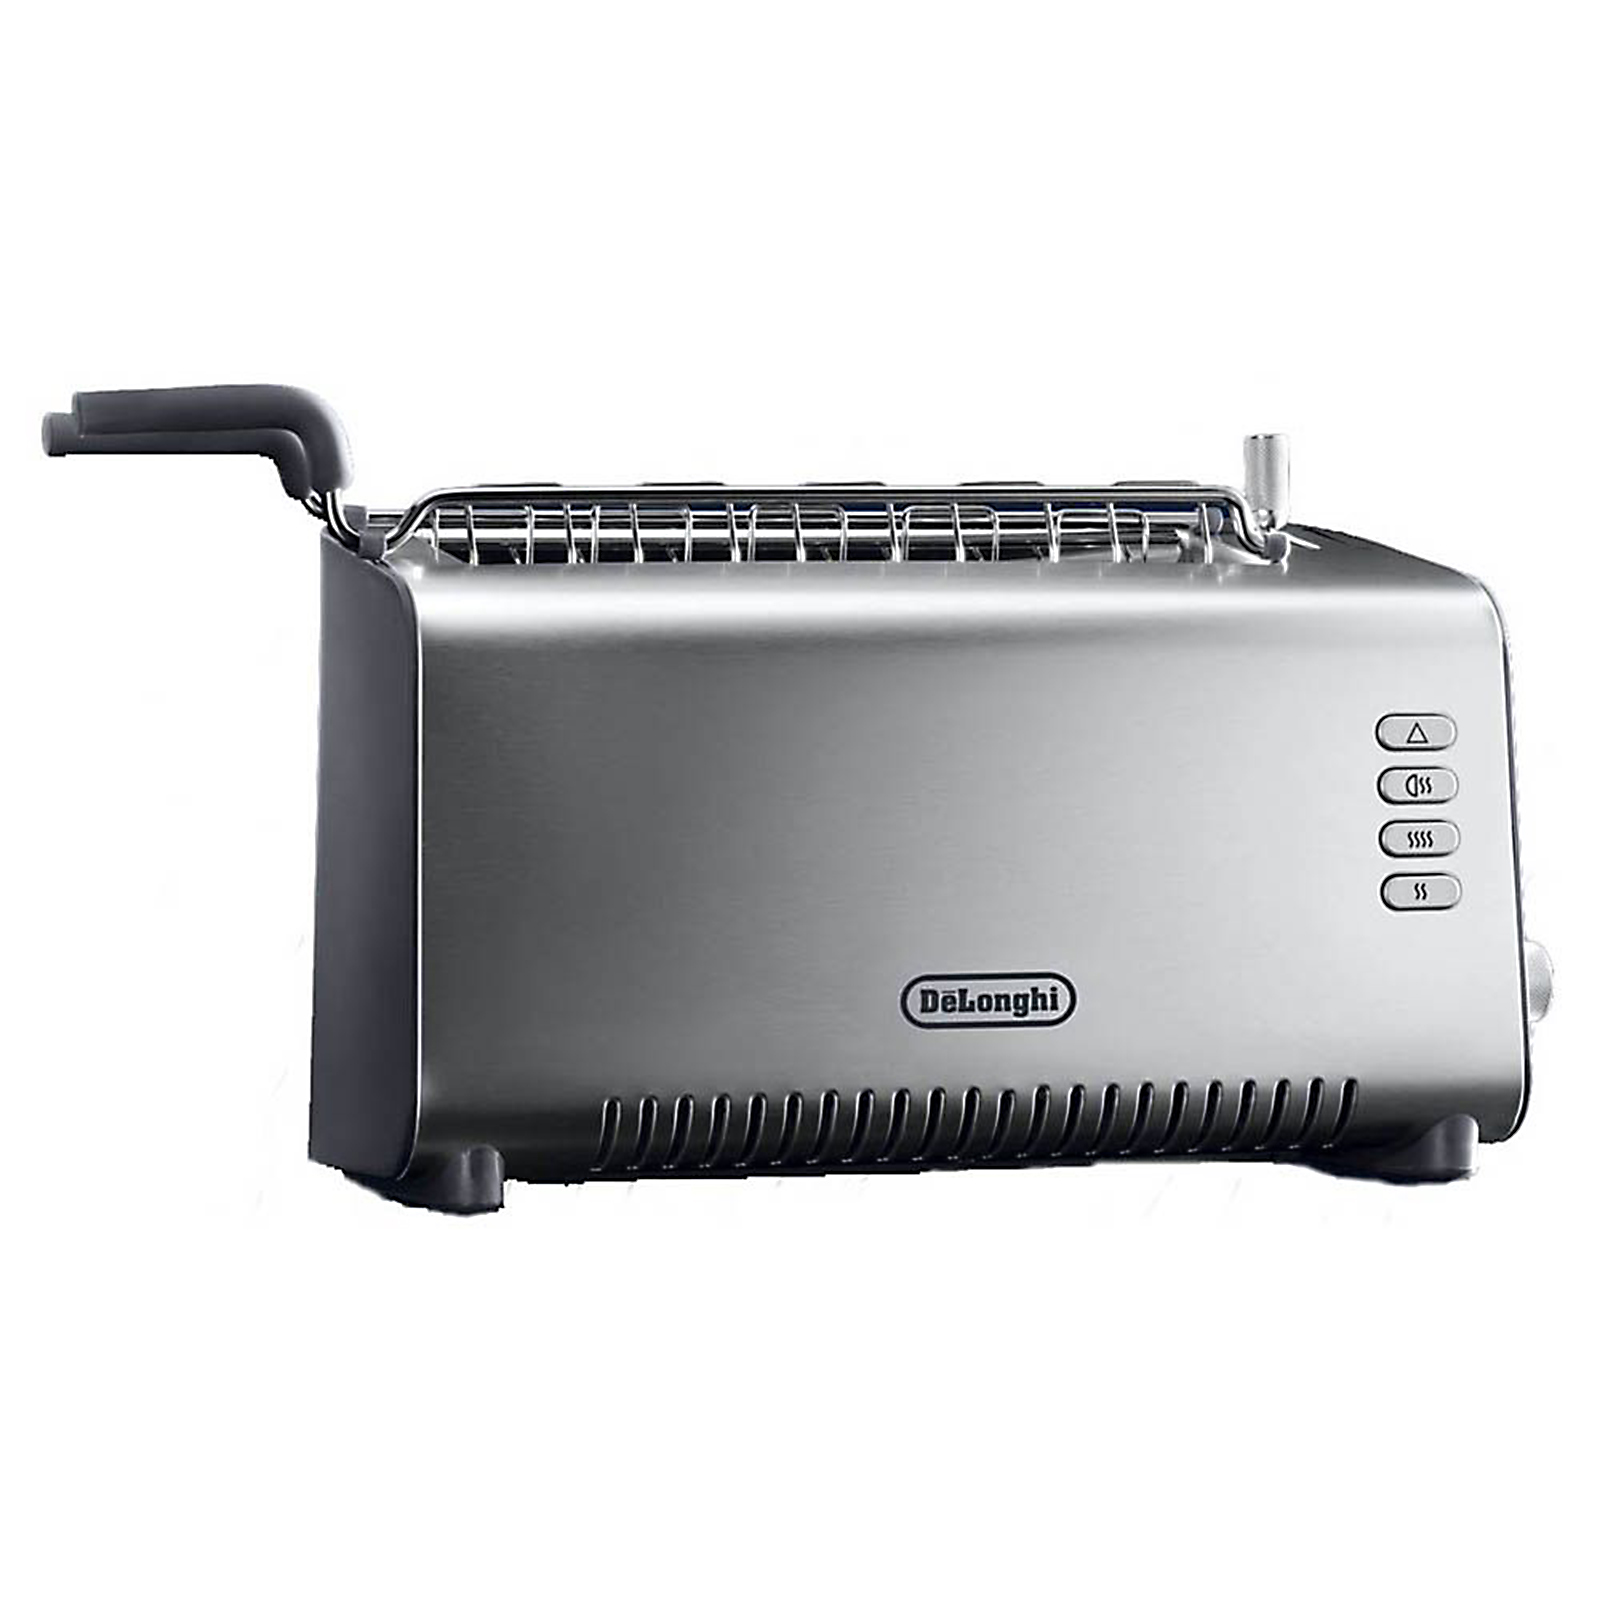 DeLONGHI  2 Slice Adjustable Toaster